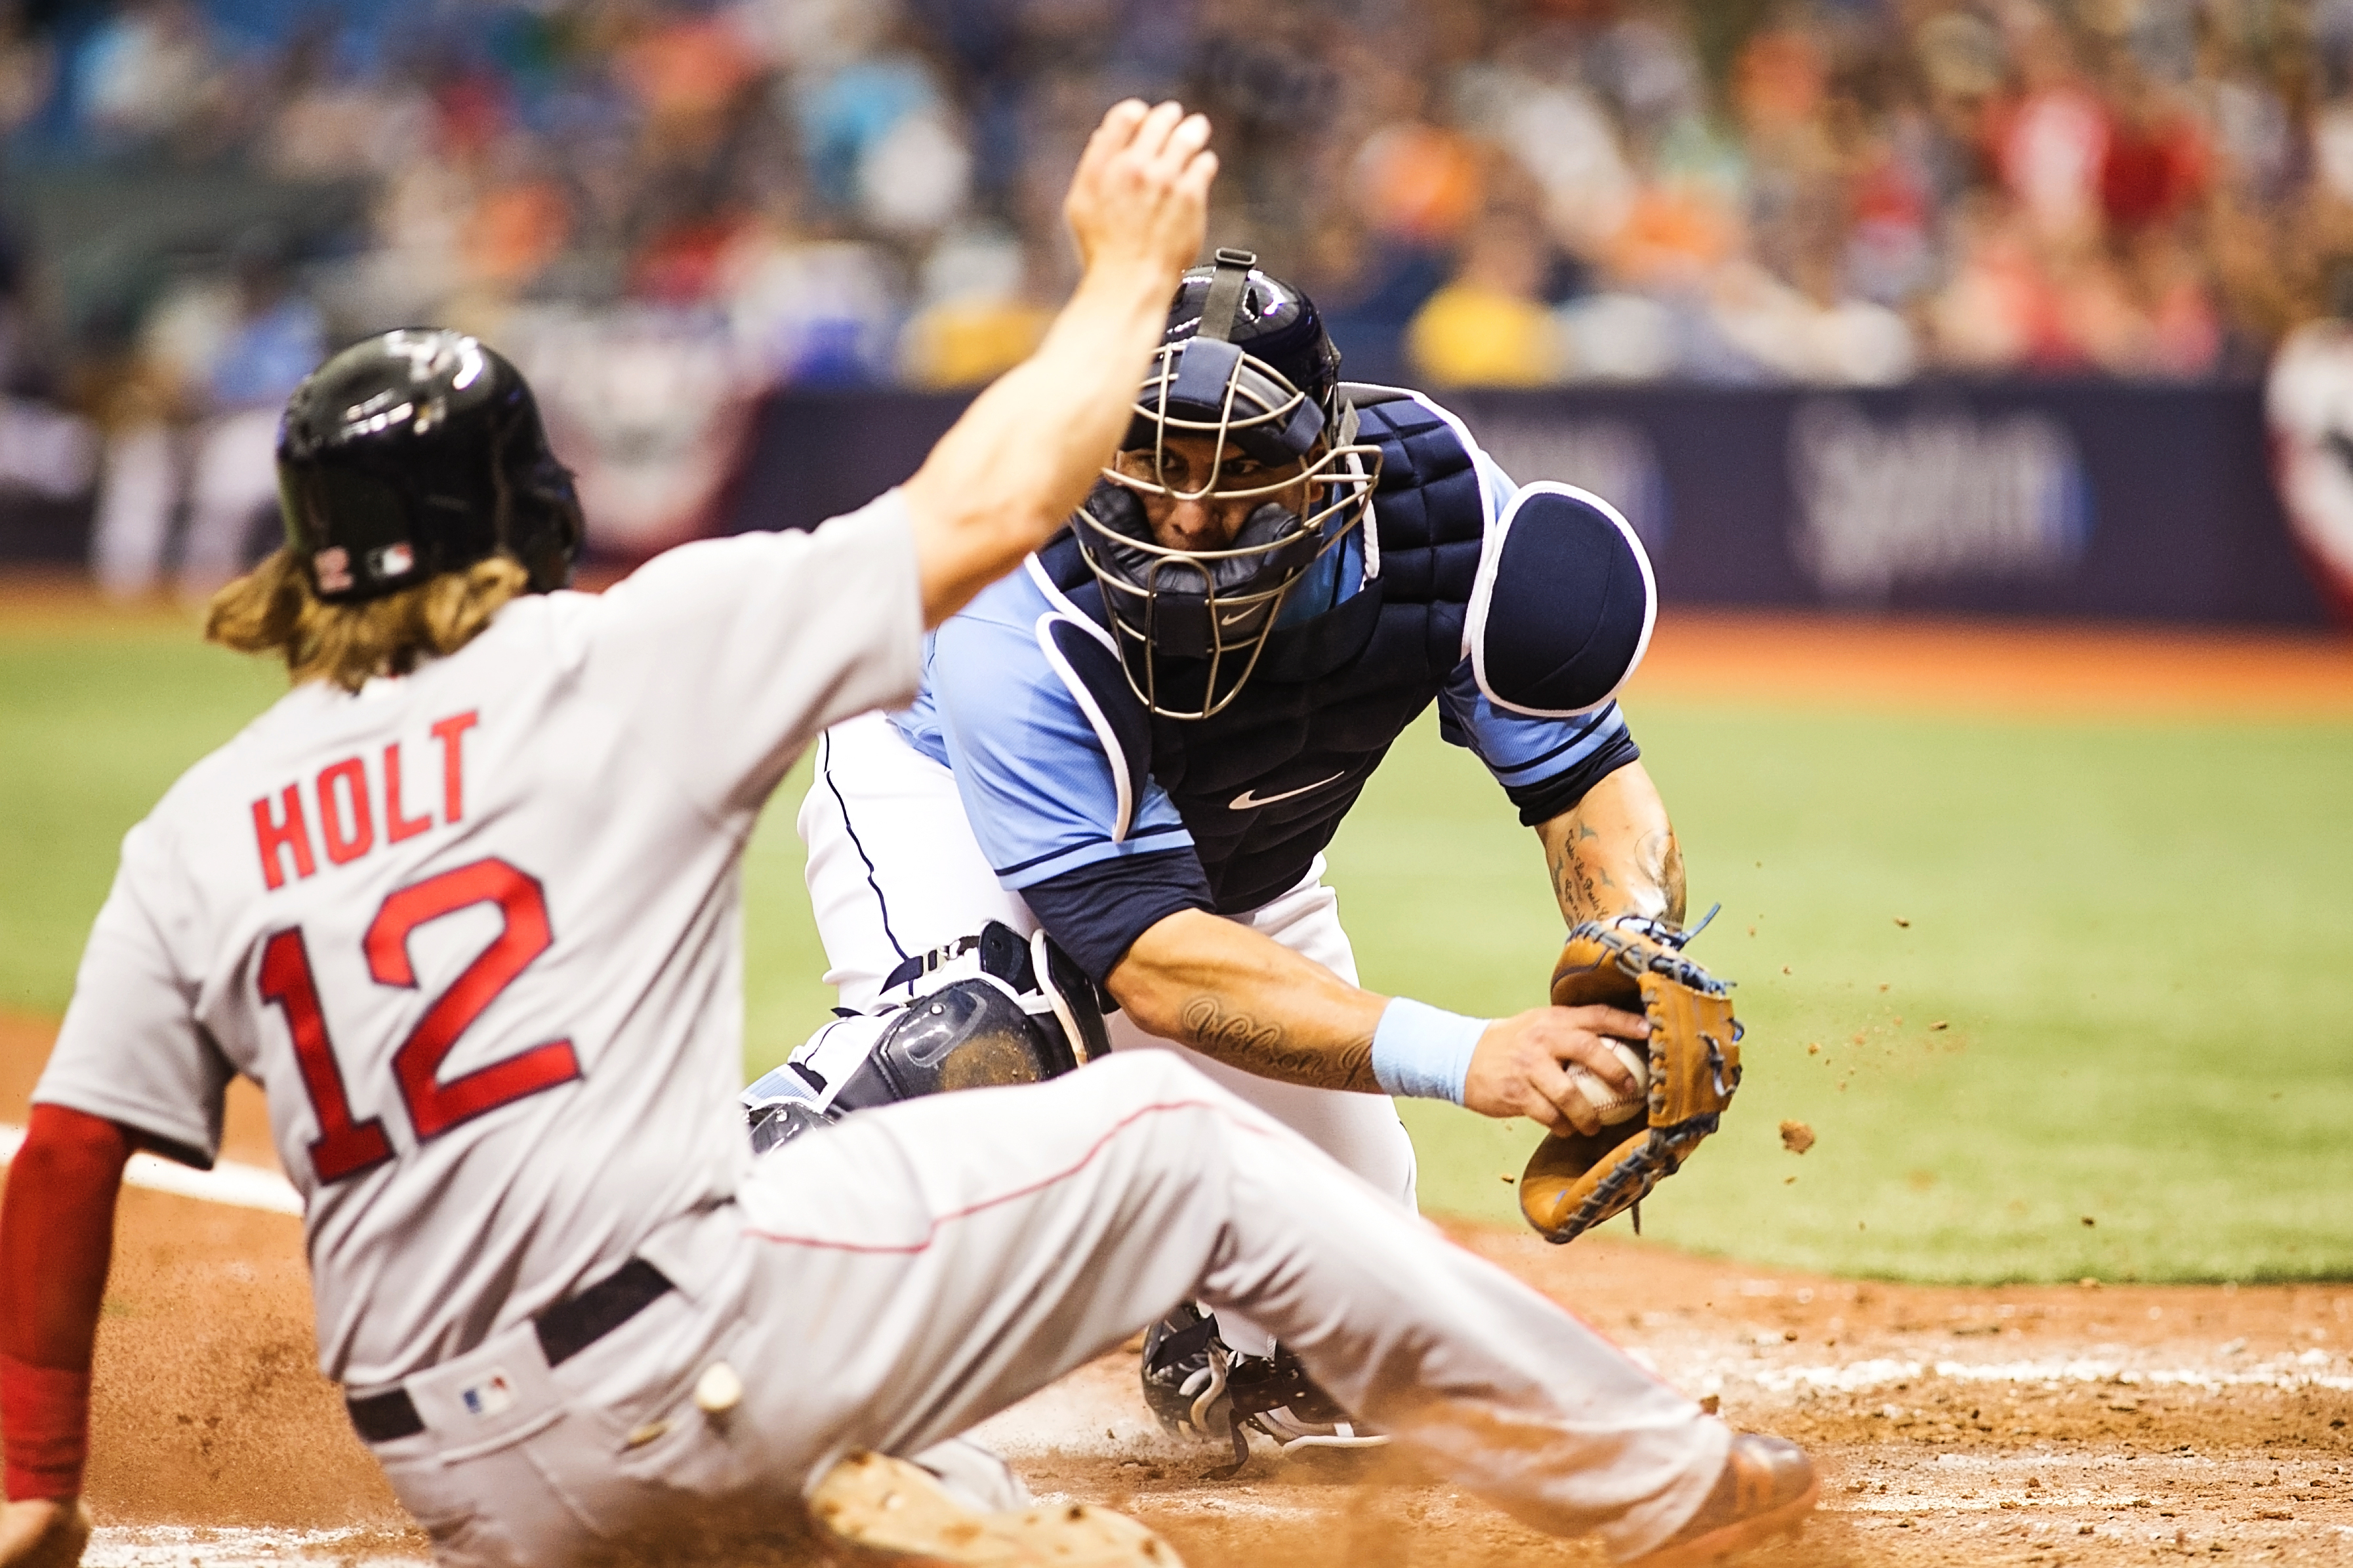 Ramos tags Holt out at the plate./CARMEN MANDATO